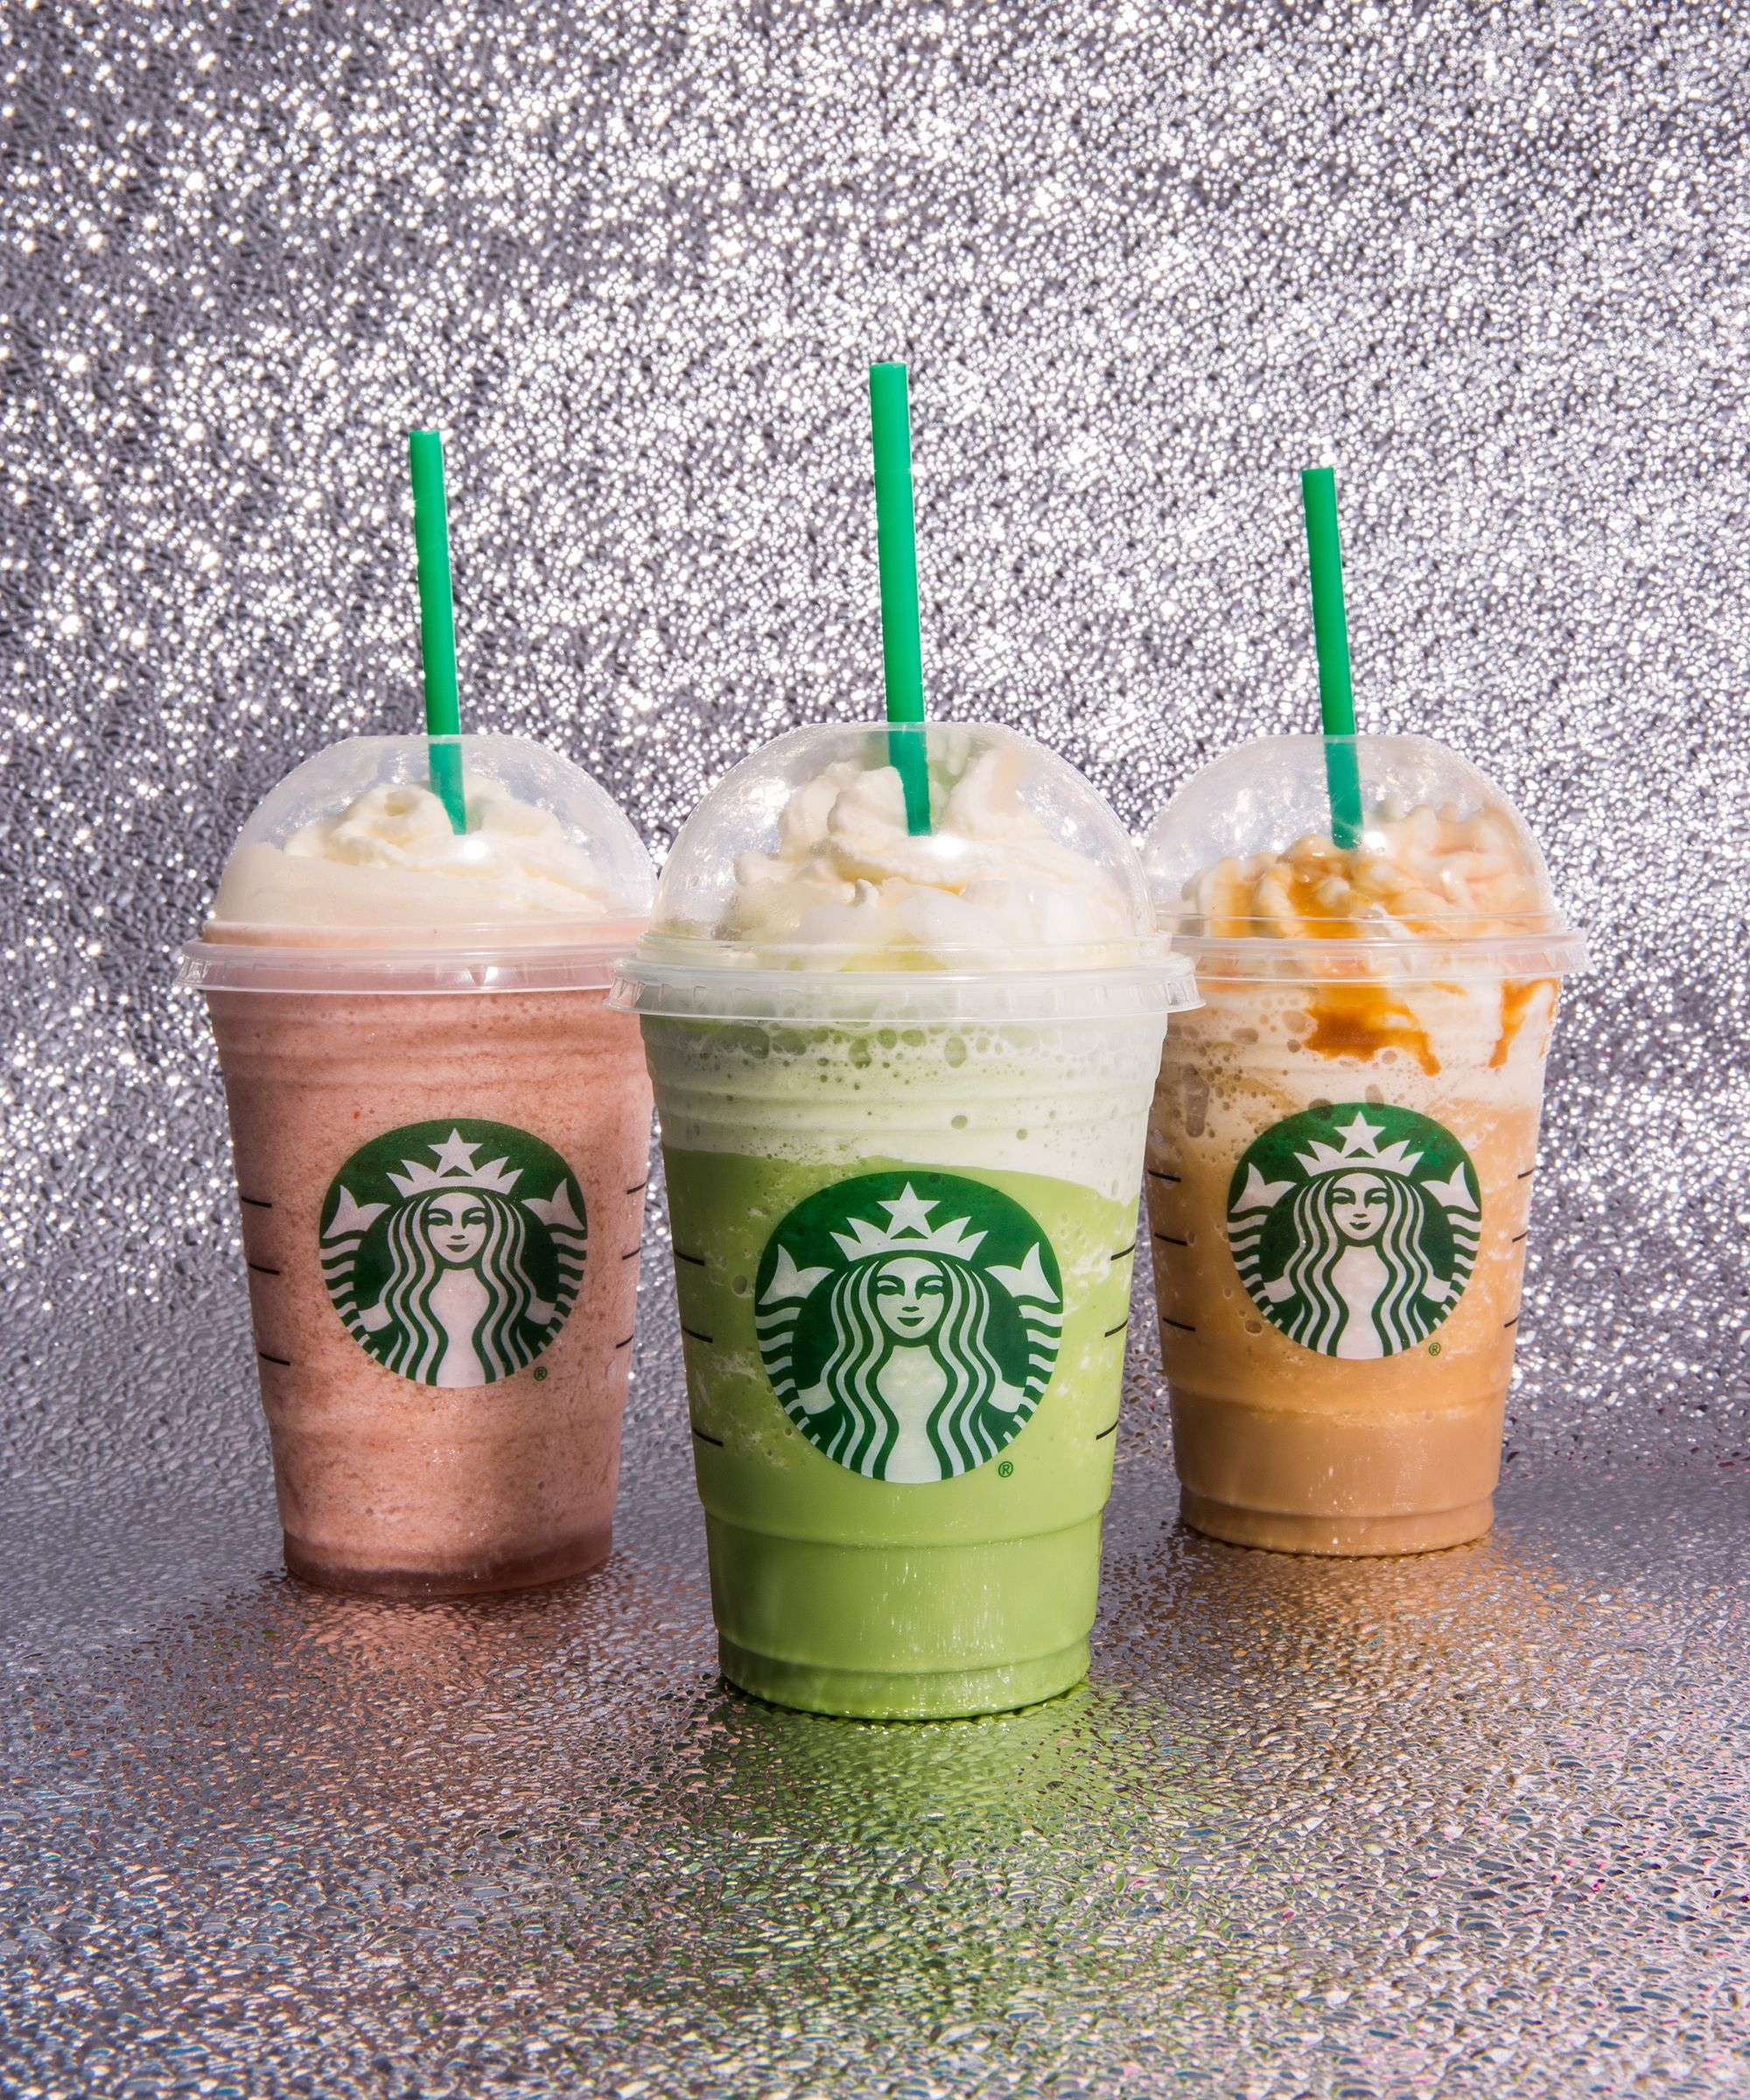 Starbucks May Introduce A New Crystal Ball Frappuccino